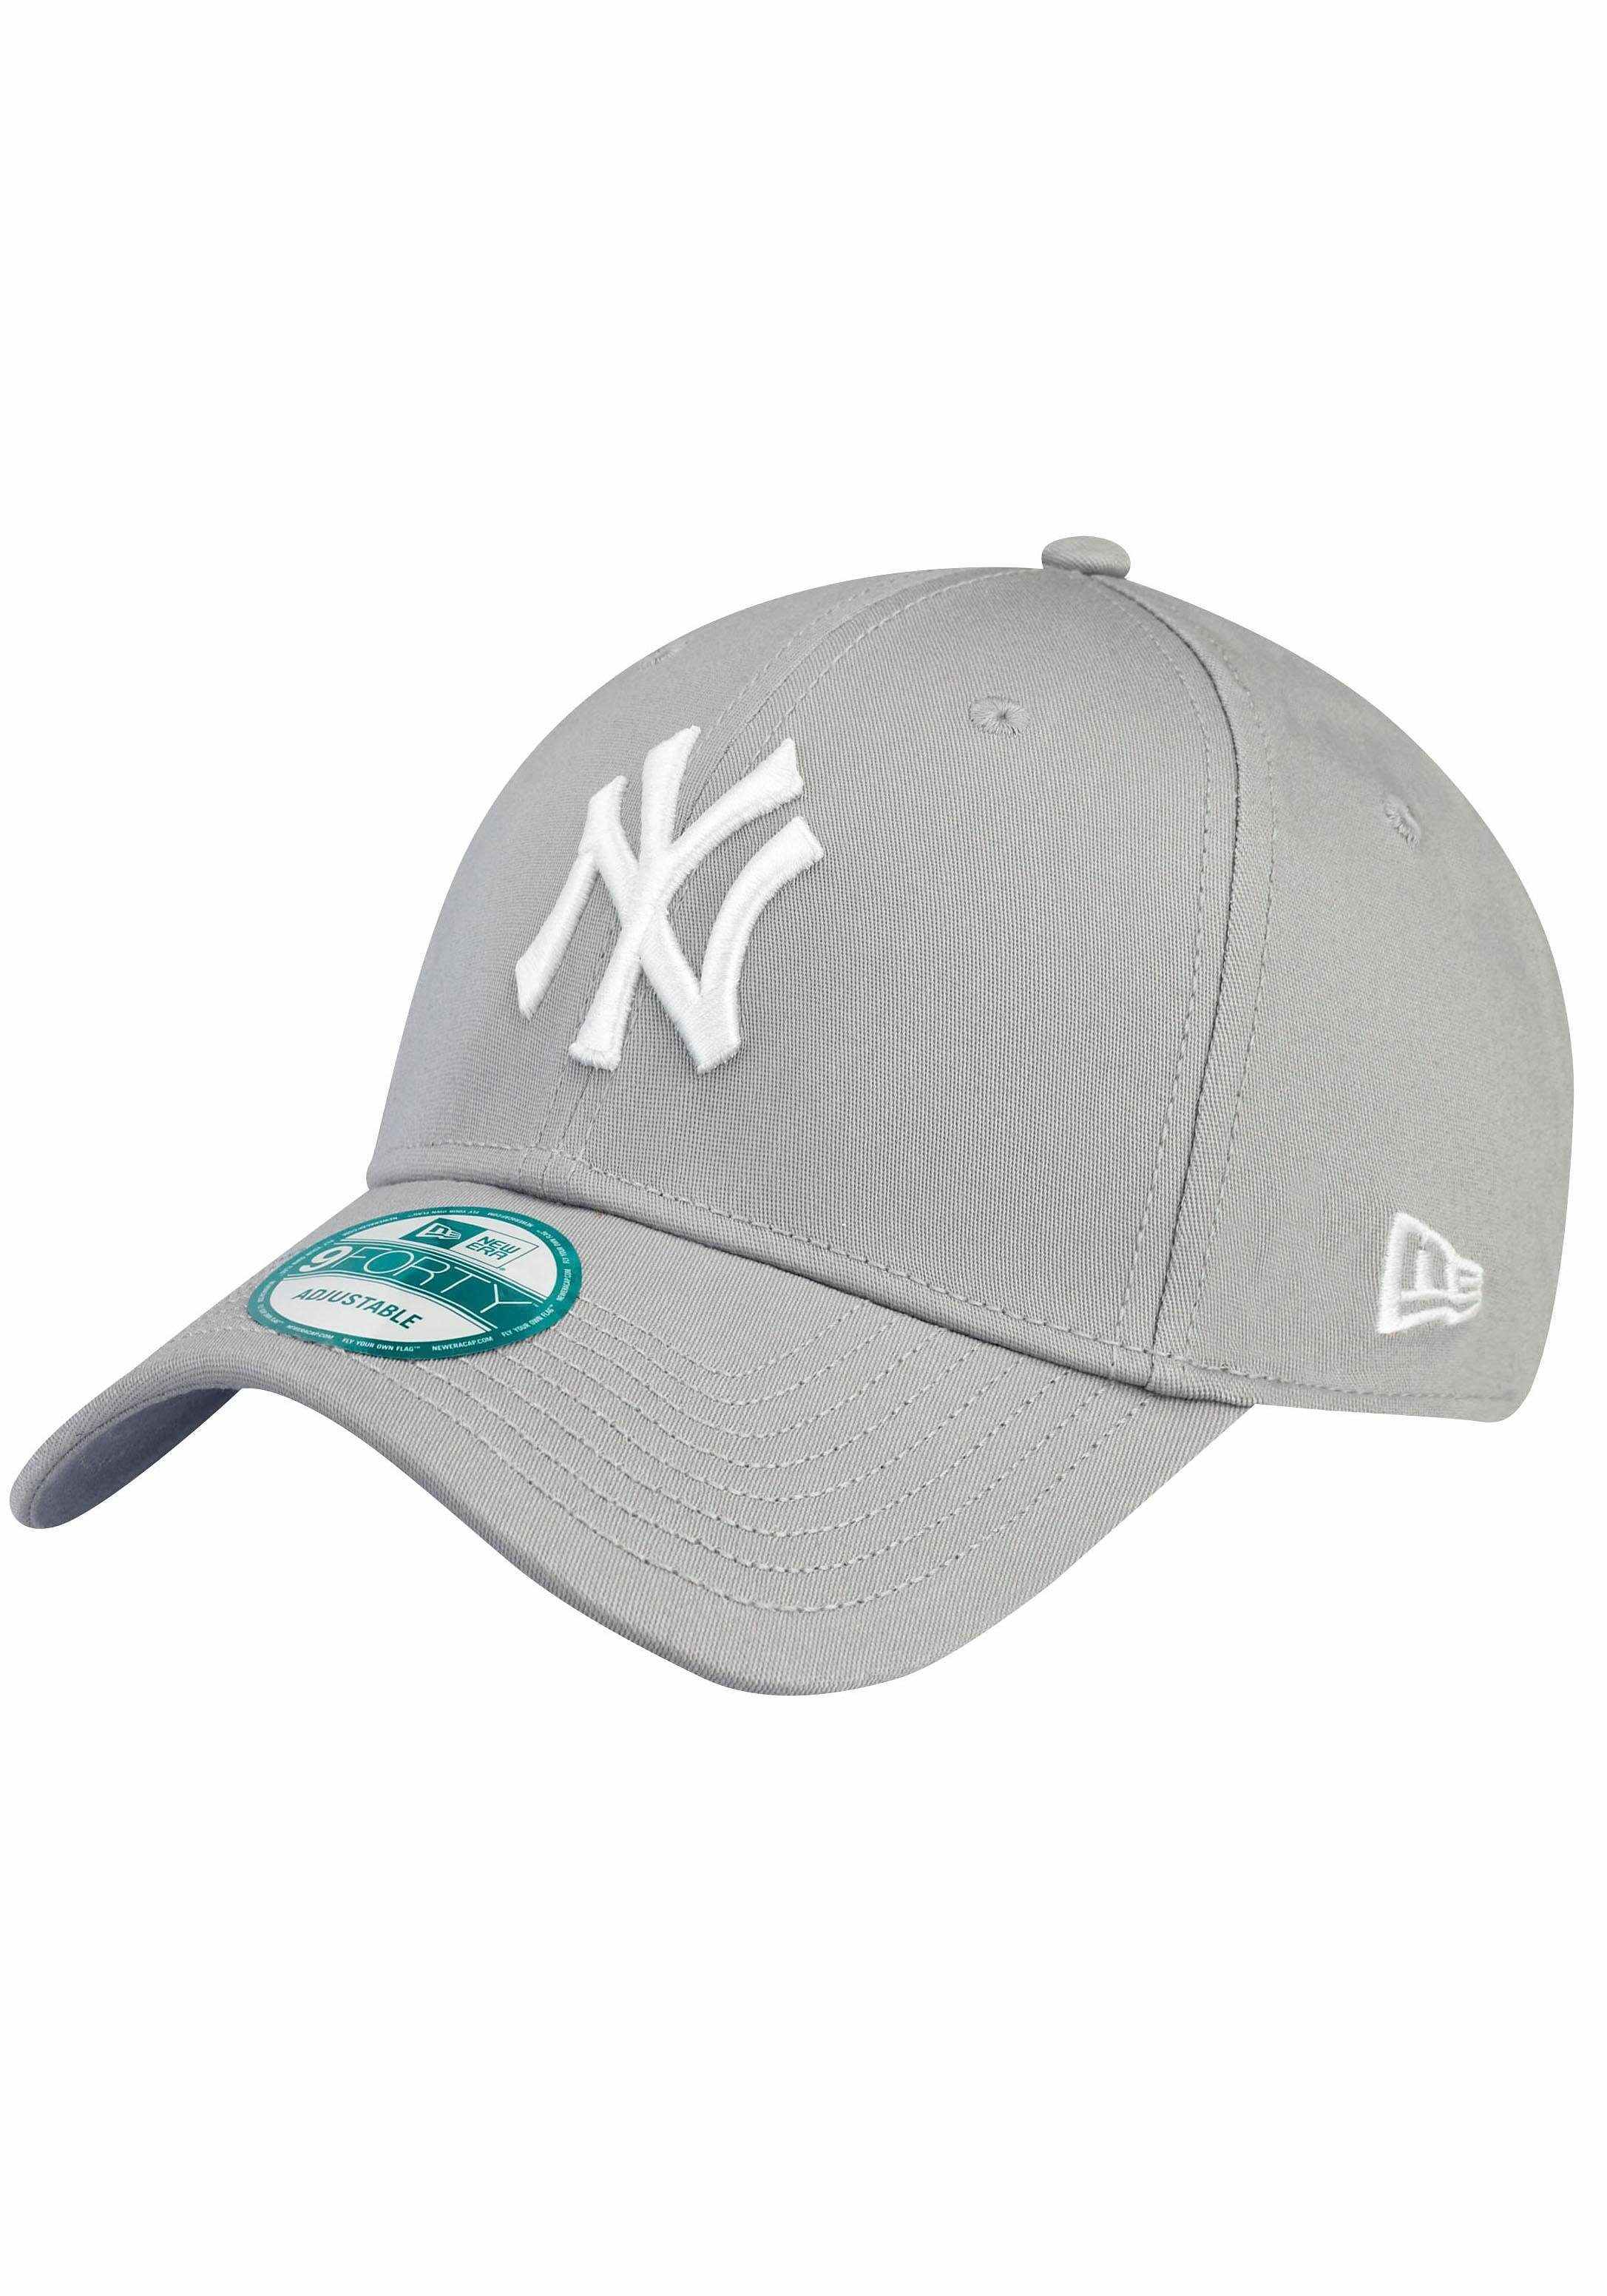 New Era Flex Cap, 39Thirty flexfitted